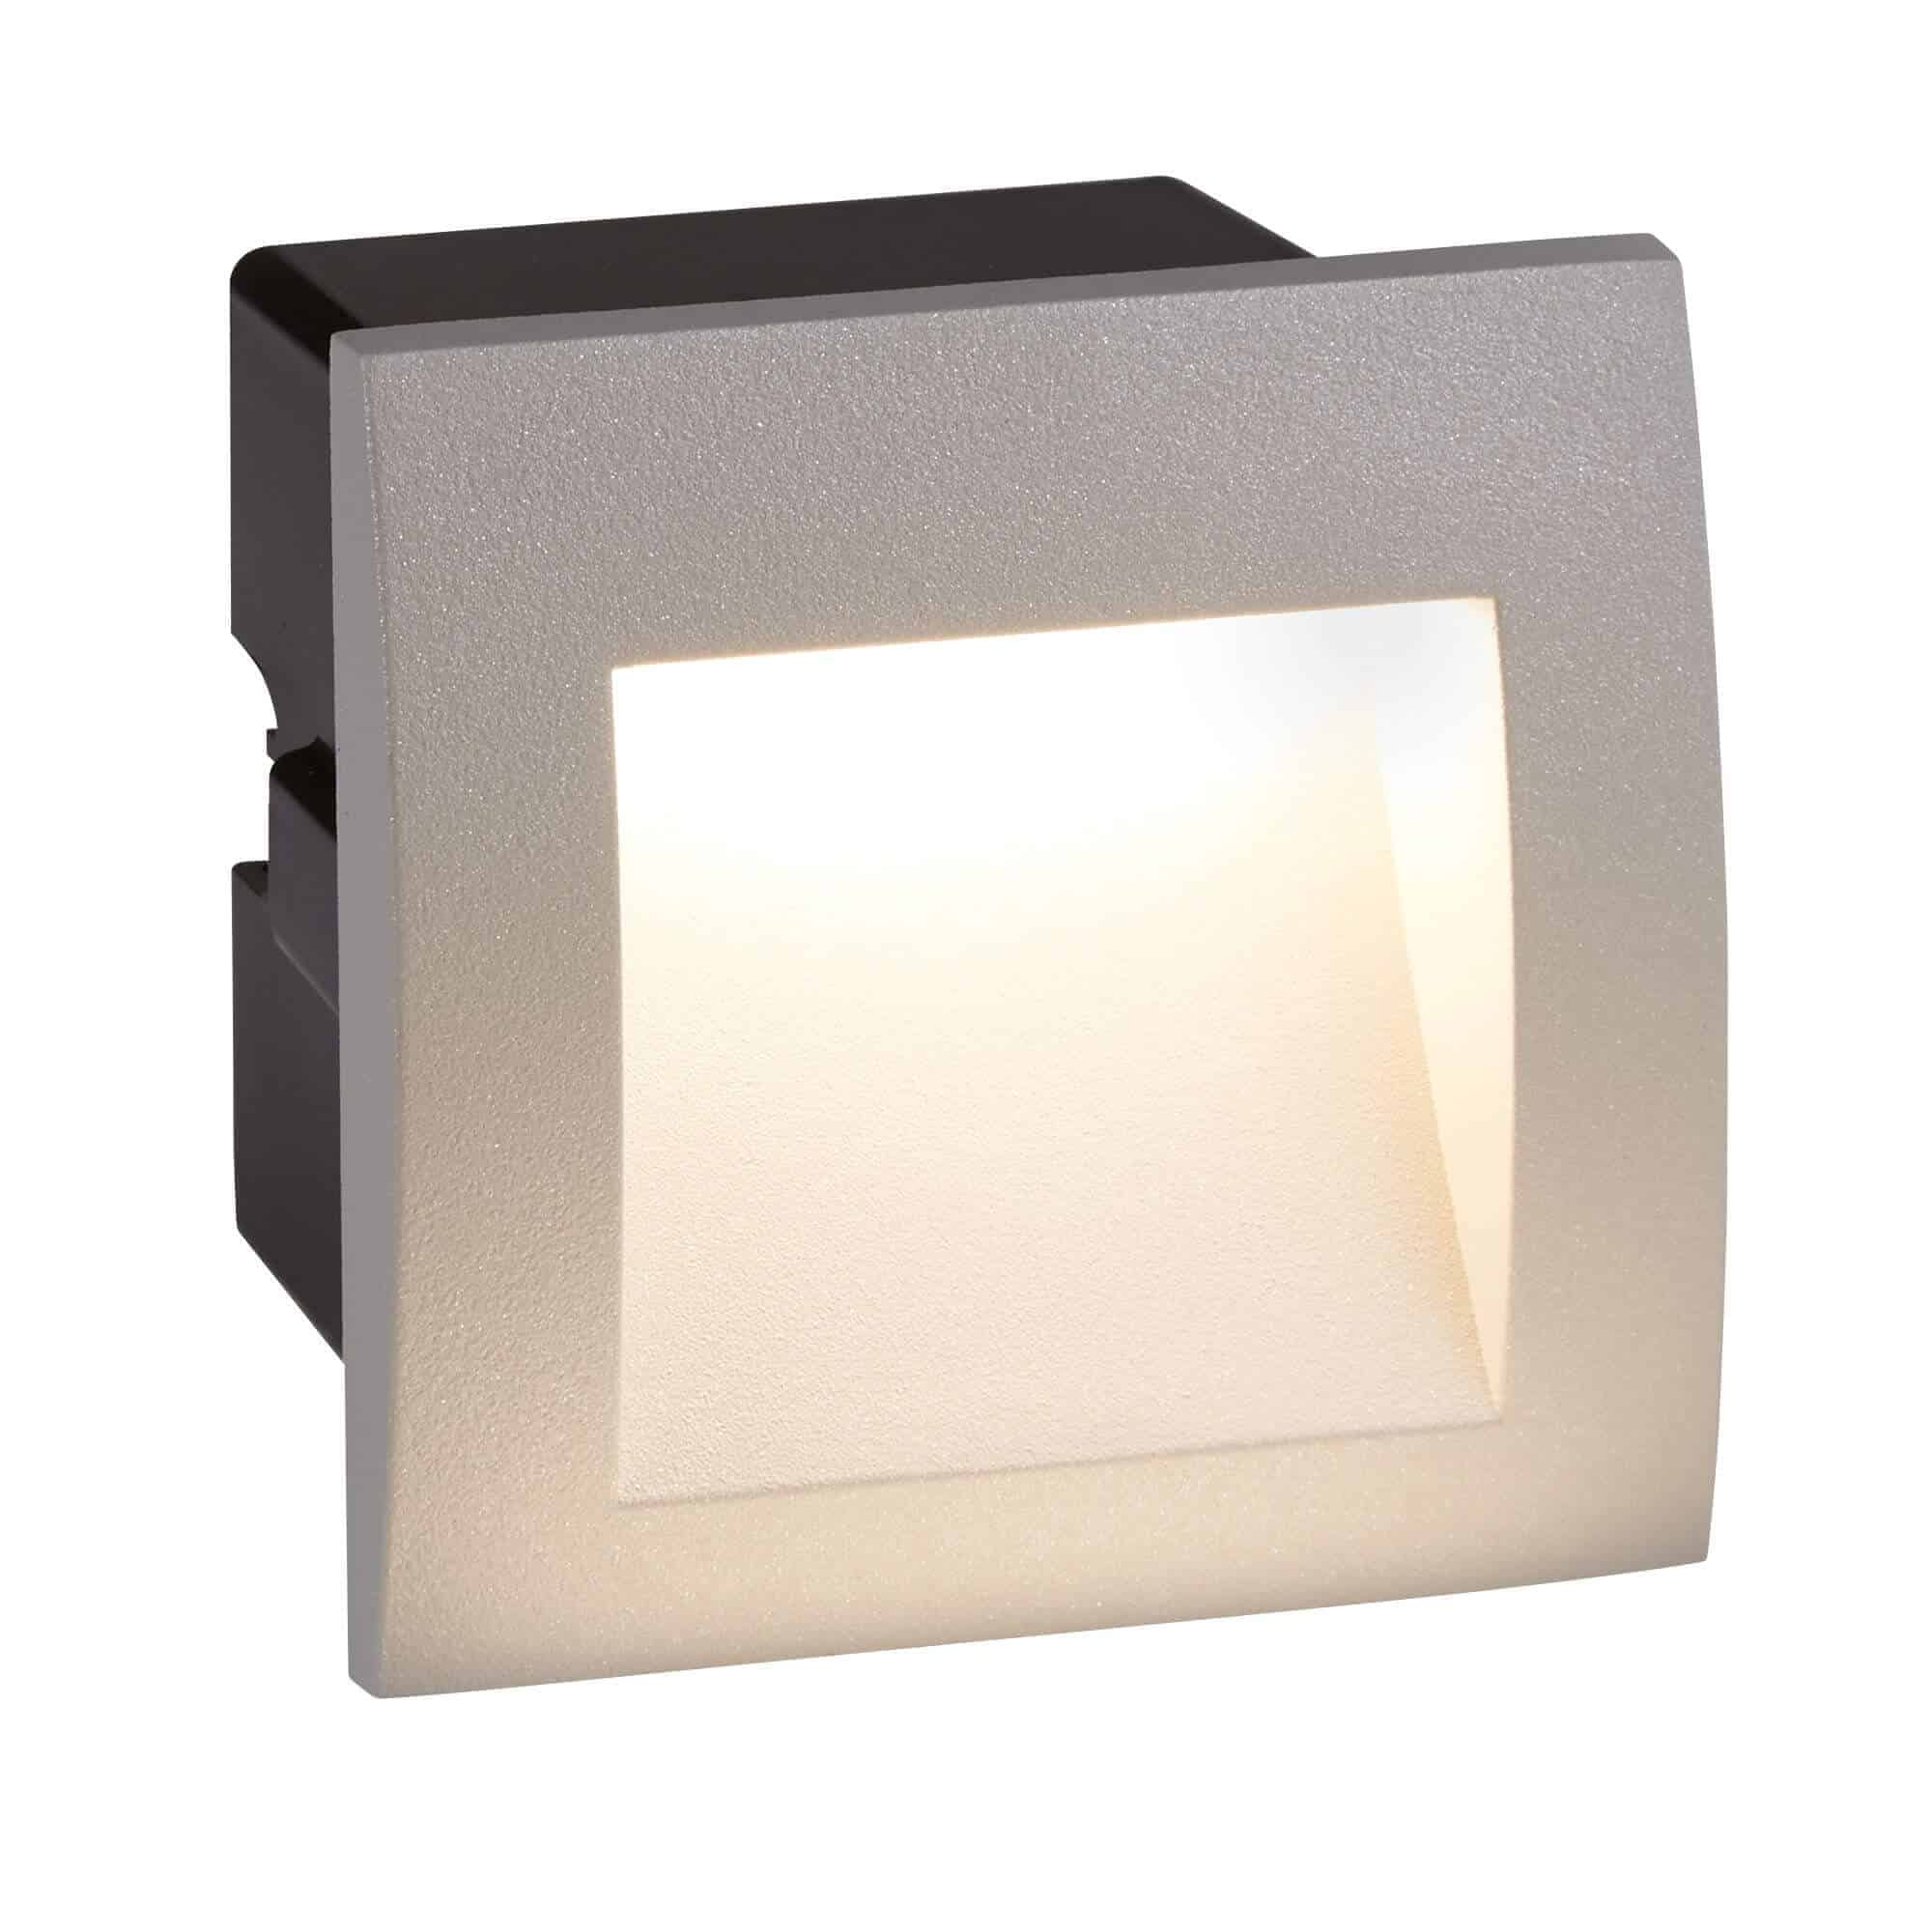 0661GY – Searchlight Ankle Grey LED Indoor/Outdoor Recessed Square